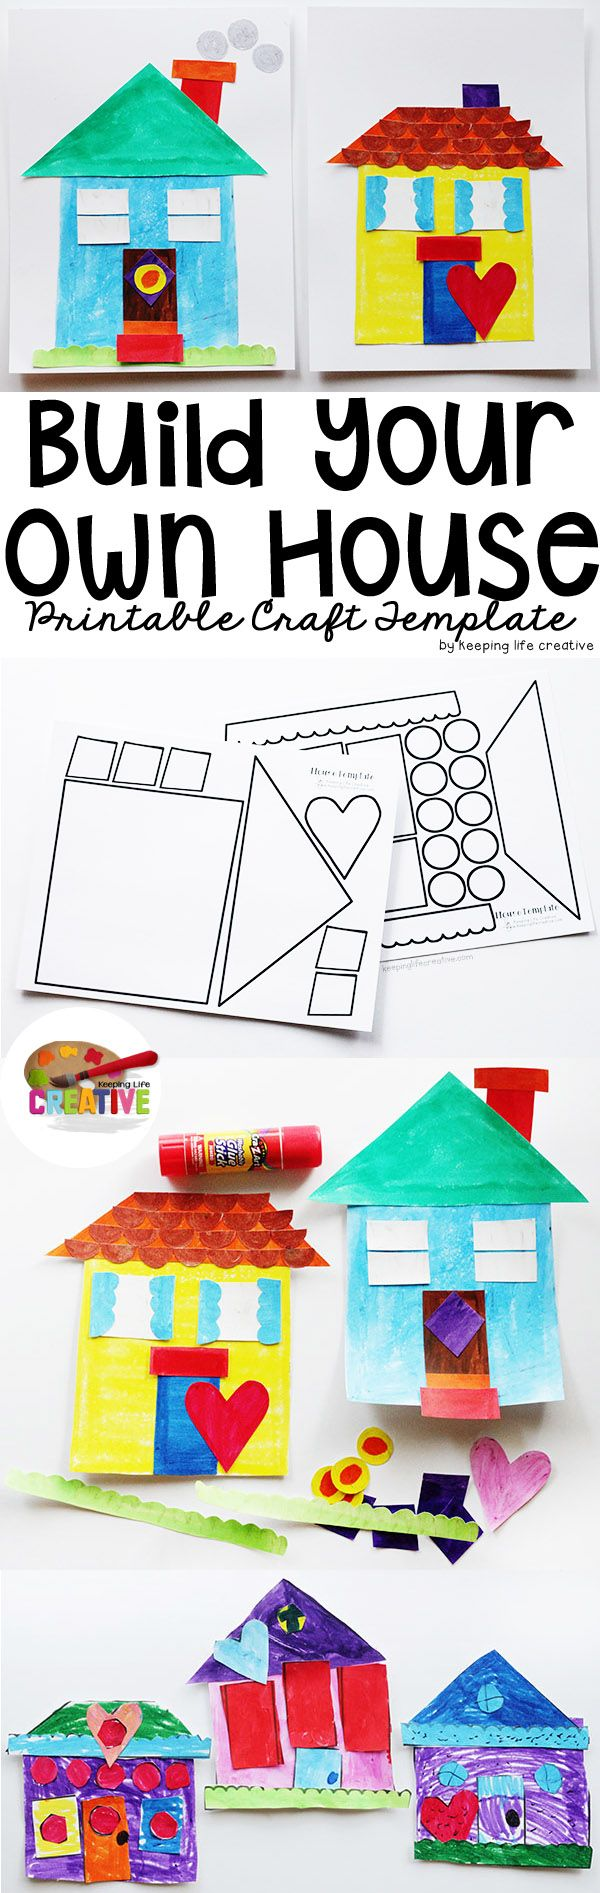 Learn about an adorable book that can foster discussions about diversity, inclusiveness, and friendship then create a unique house craft to compliment the book.